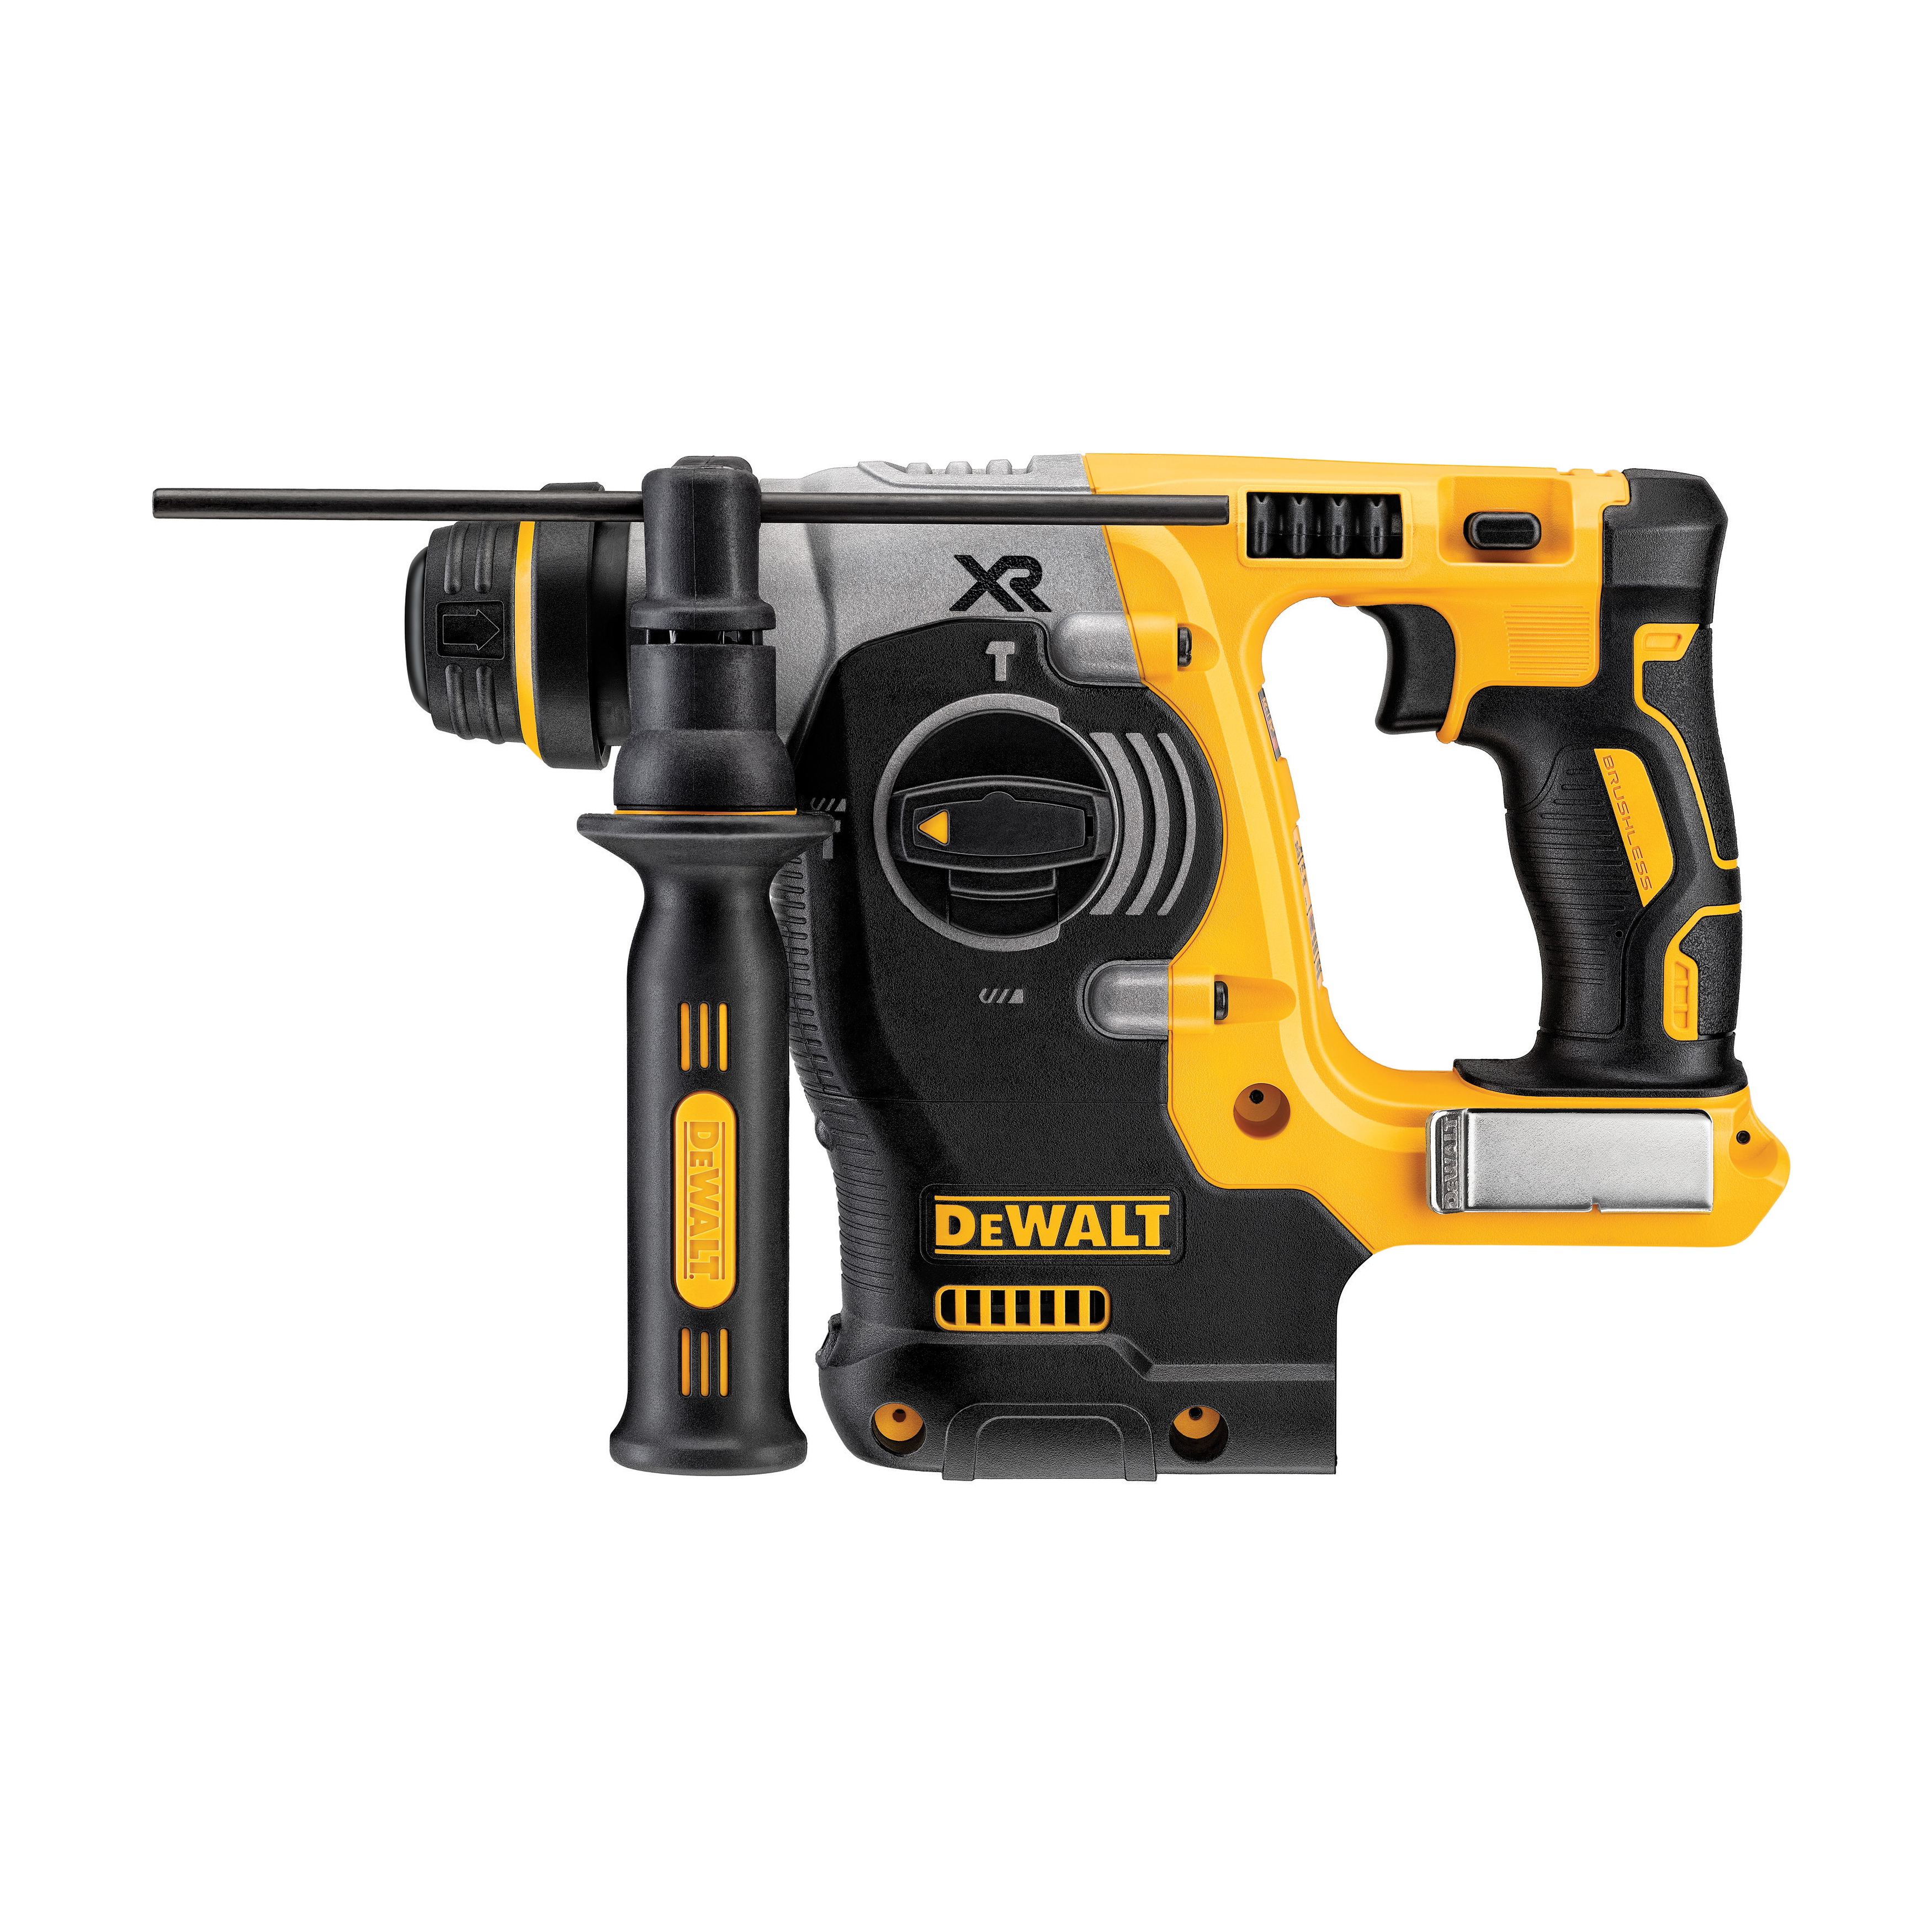 DeWALT® 20V MAX* DCH273B XR™ High Performance Cordless Rotary Hammer, 1 in SDS Plus® Chuck, 20 VAC, 0 to 1100 rpm No-Load, Lithium-Ion Battery